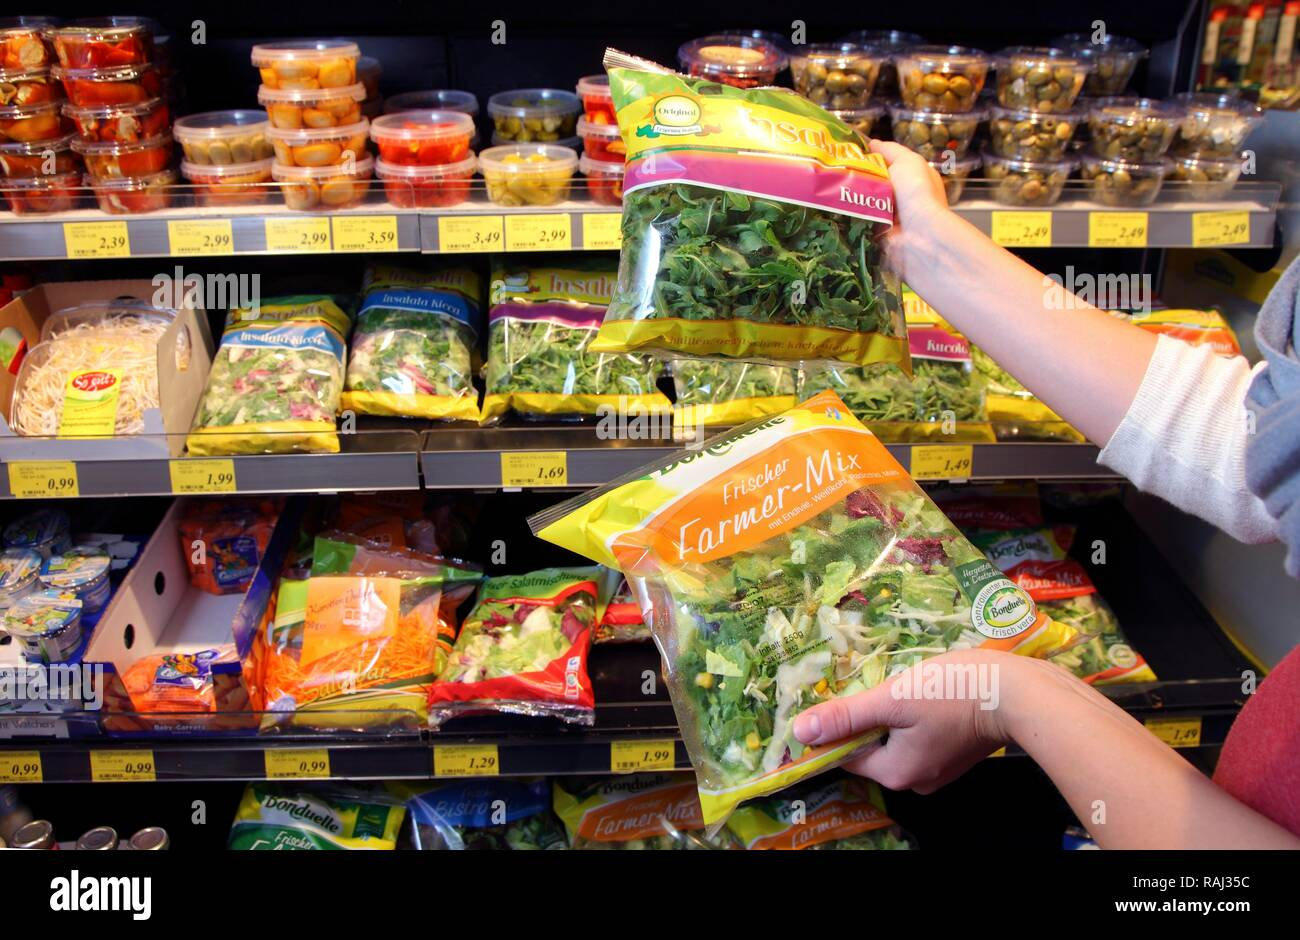 Küche - Fertig verpackte Salate, Food Hall, Supermarkt Stockbild